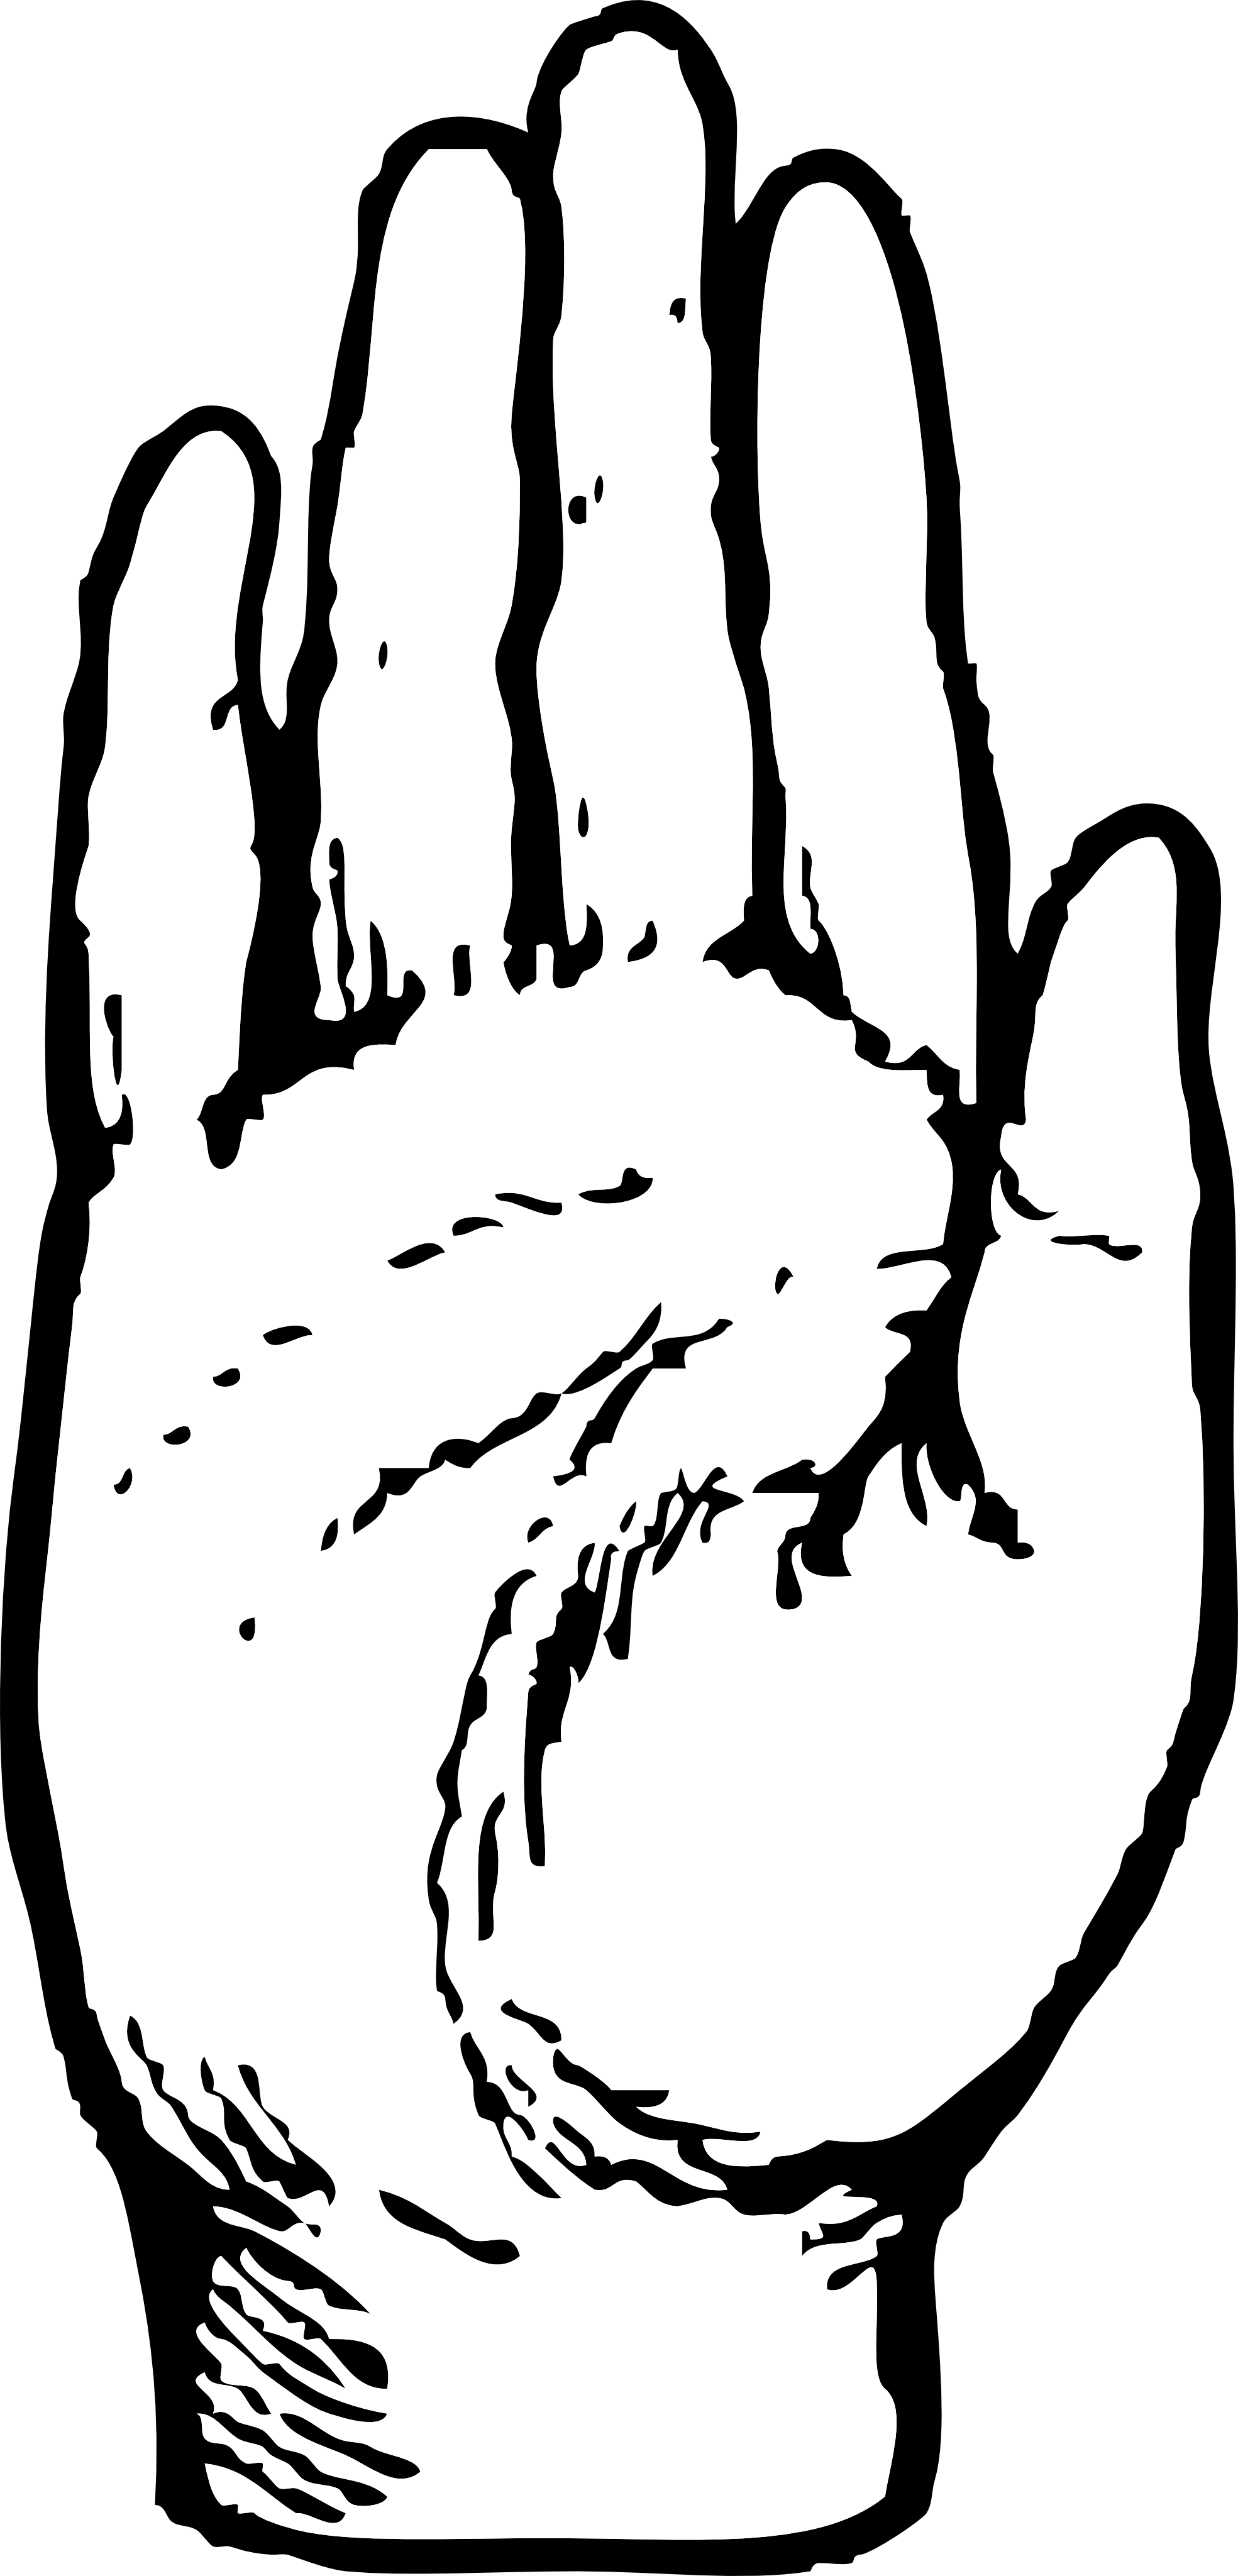 Two Hands Clipart Black And White | Clipart Panda - Free Clipart ...